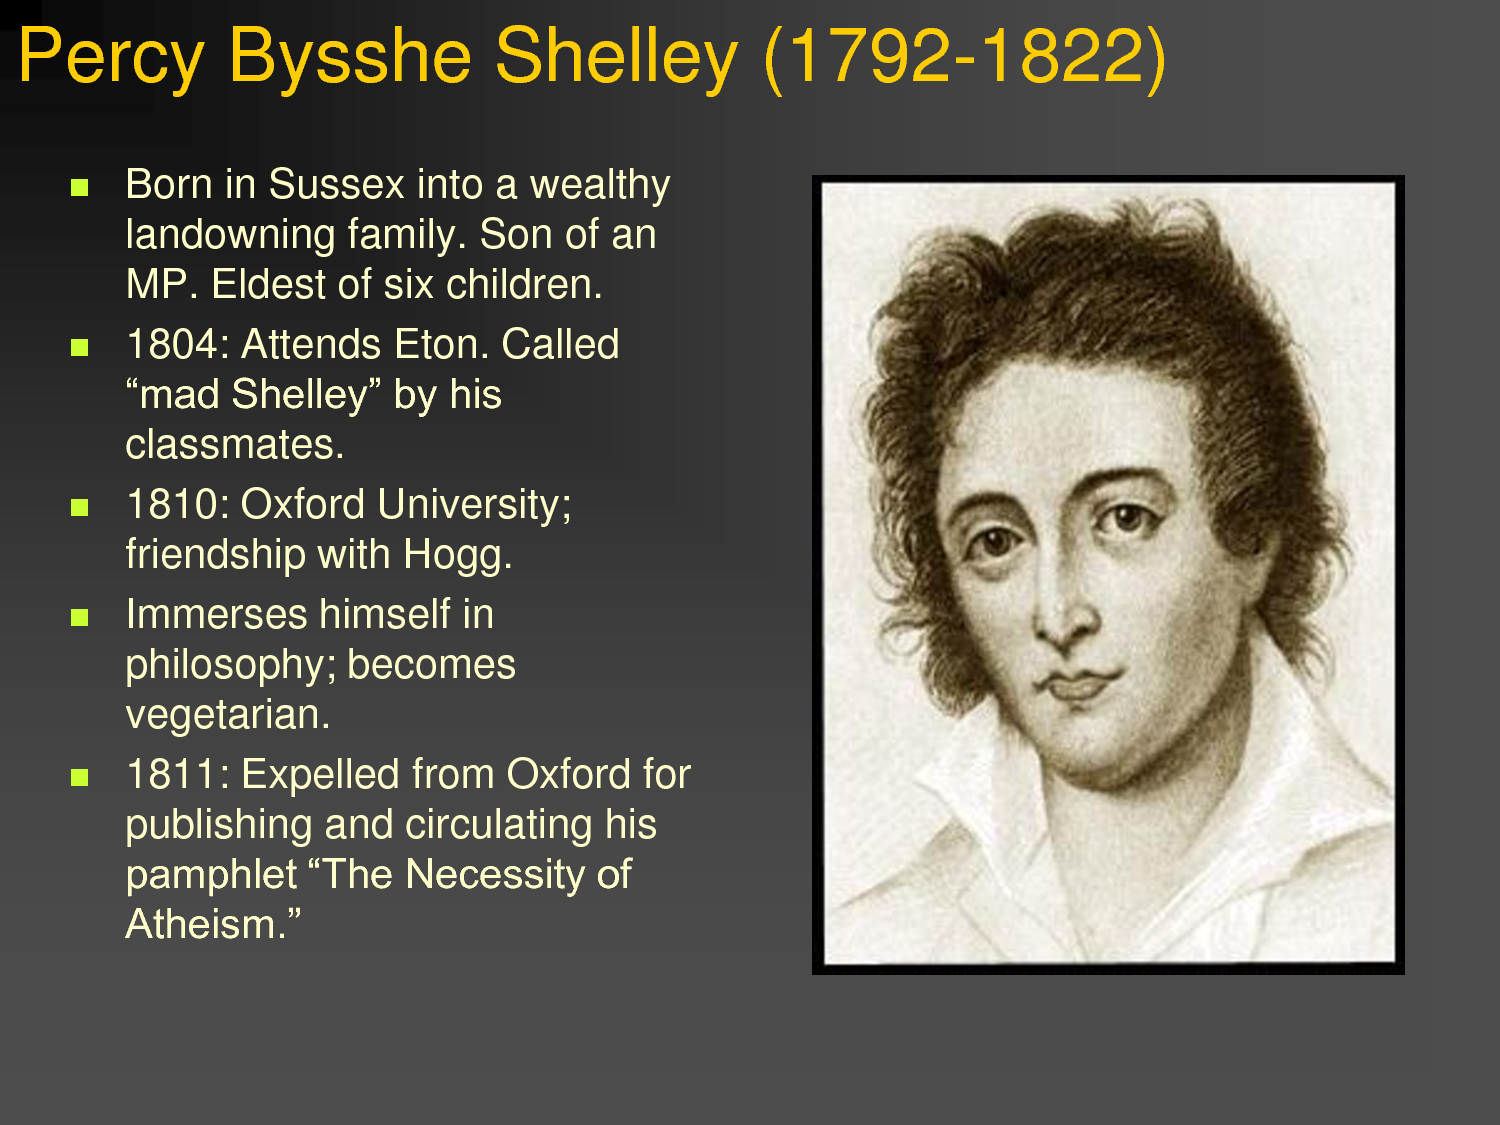 Percy bysshe shelley quotes quotesgram - Percy Bysshe Shelley Http Cdn Quotesgram Com Img 7 43 690086984 Percy_shelley_bio_docstoc_com Jpeg Percy Bysshe Shelley Pinterest Poet